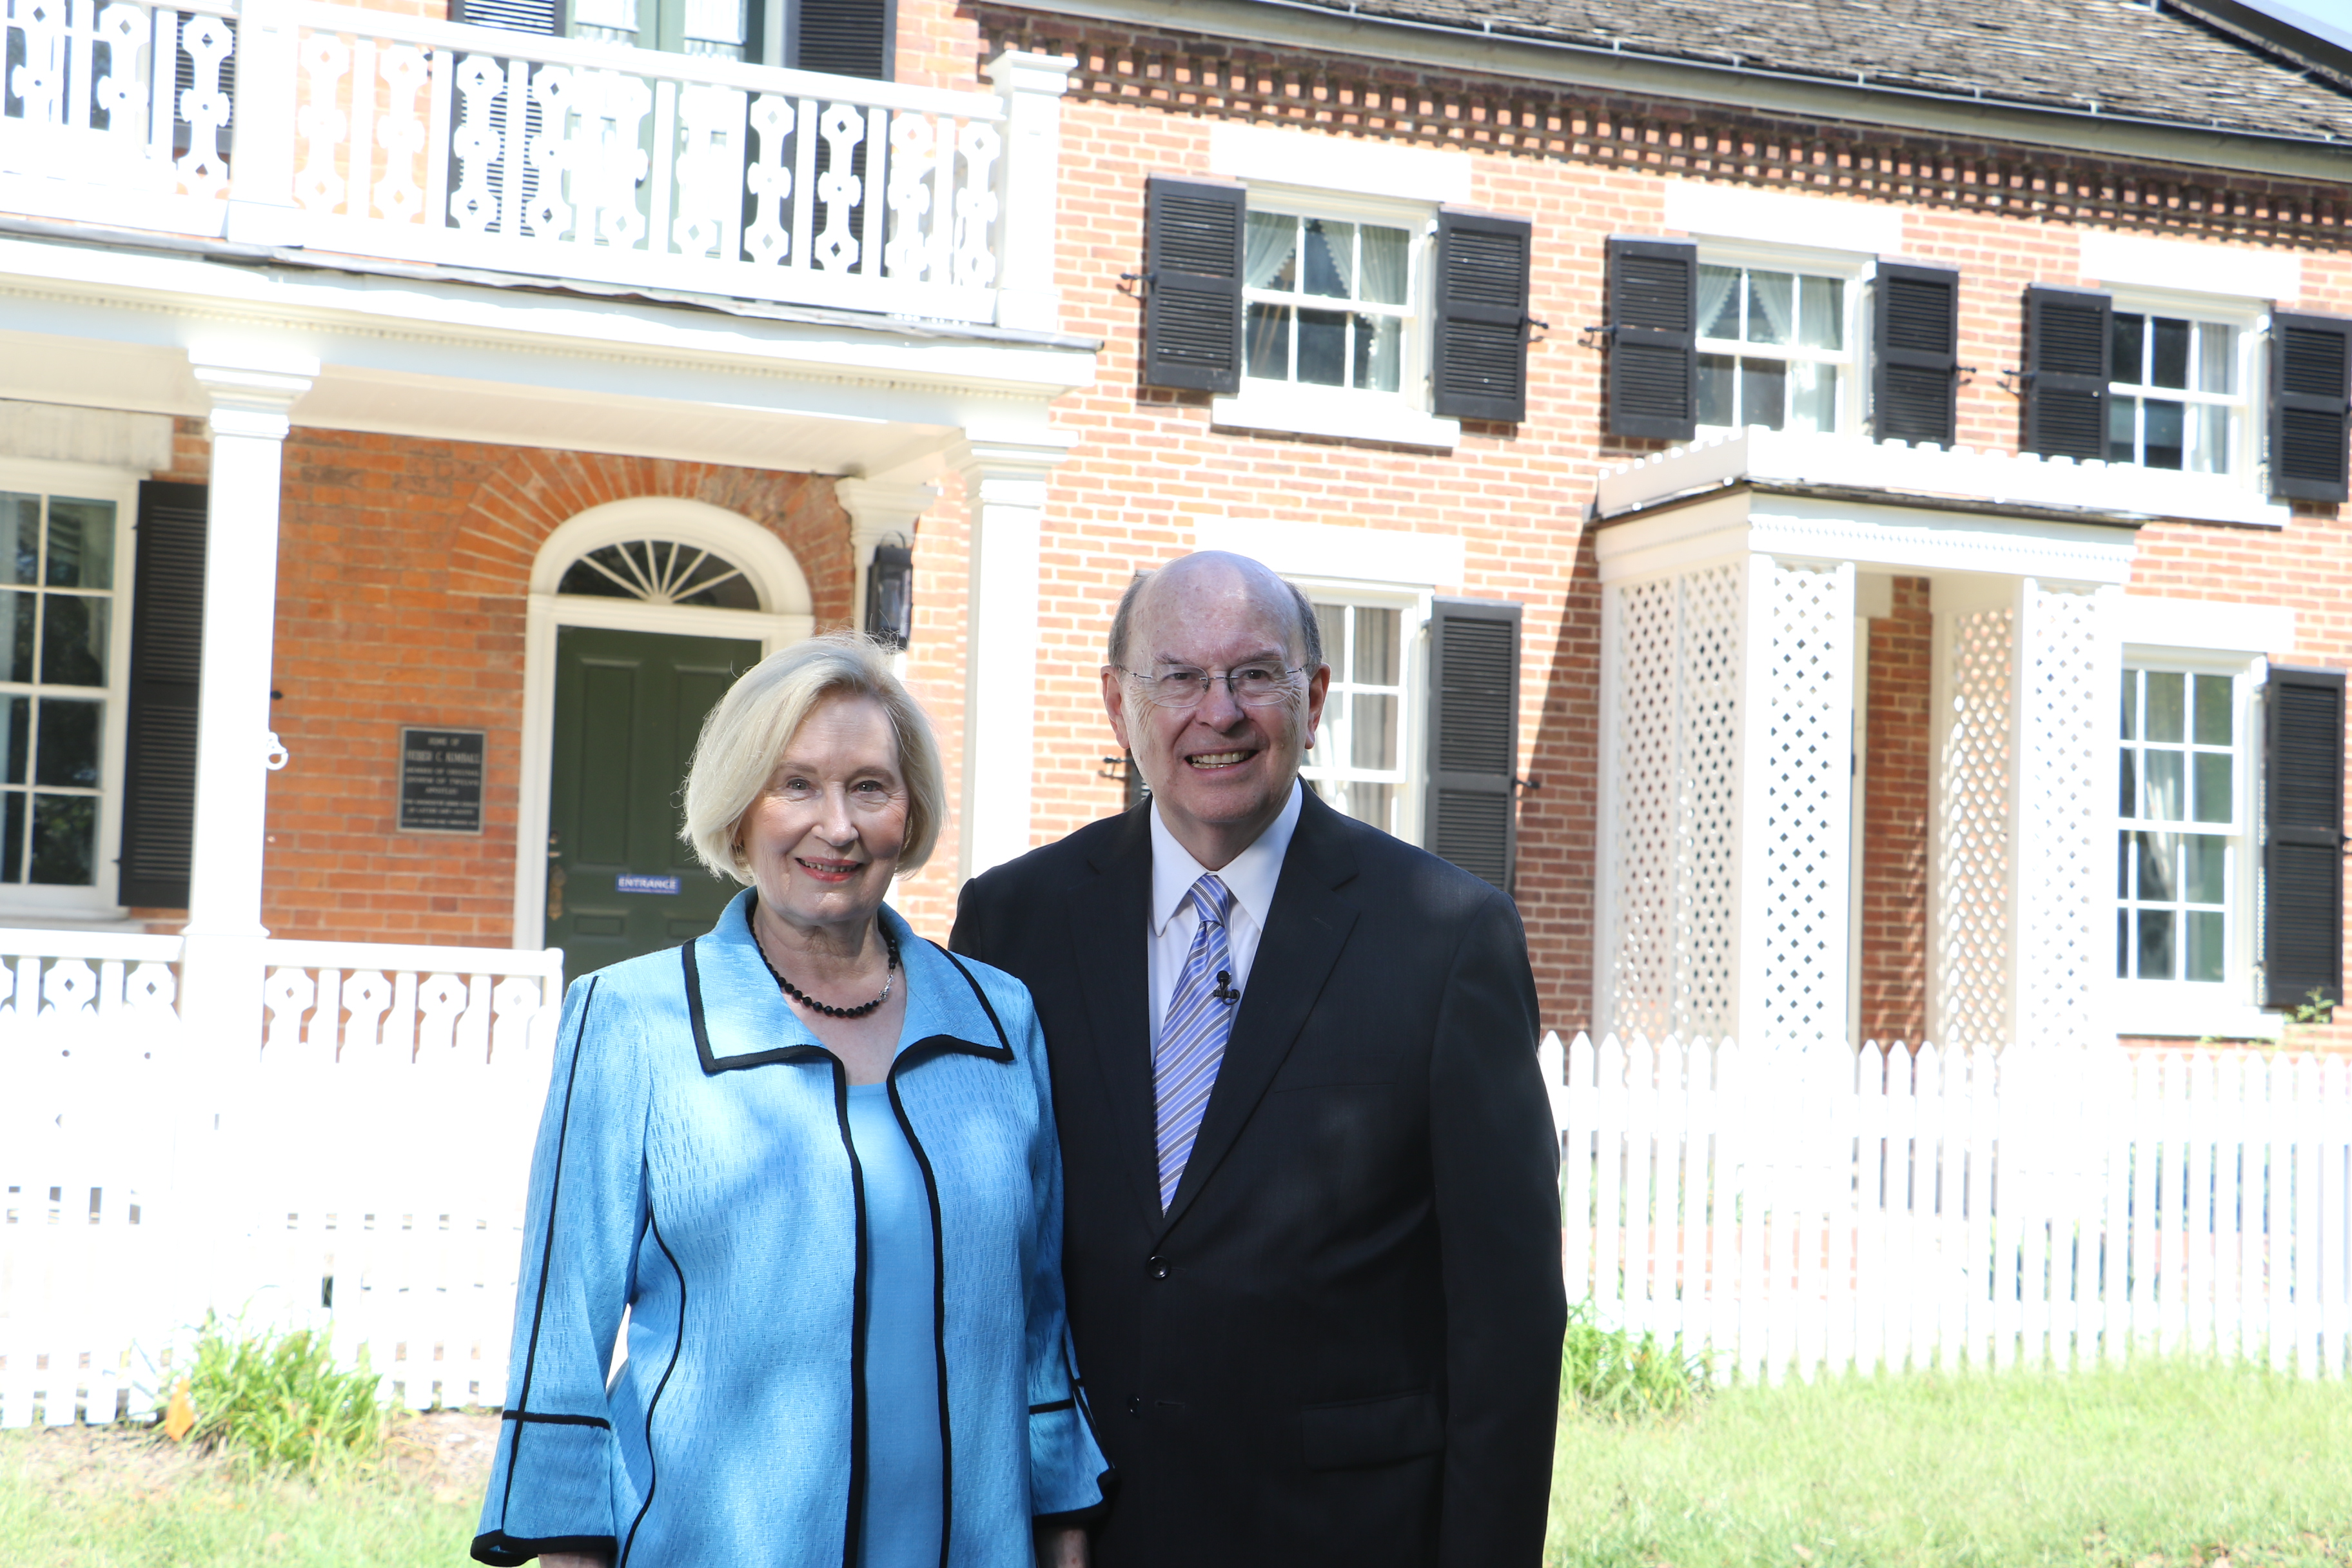 Elder Quentin L. Cook and his wife, Sister Mary Cook, visit Nauvoo before he participated in a Face to Face event in the historic location on Sept. 9, 2018.